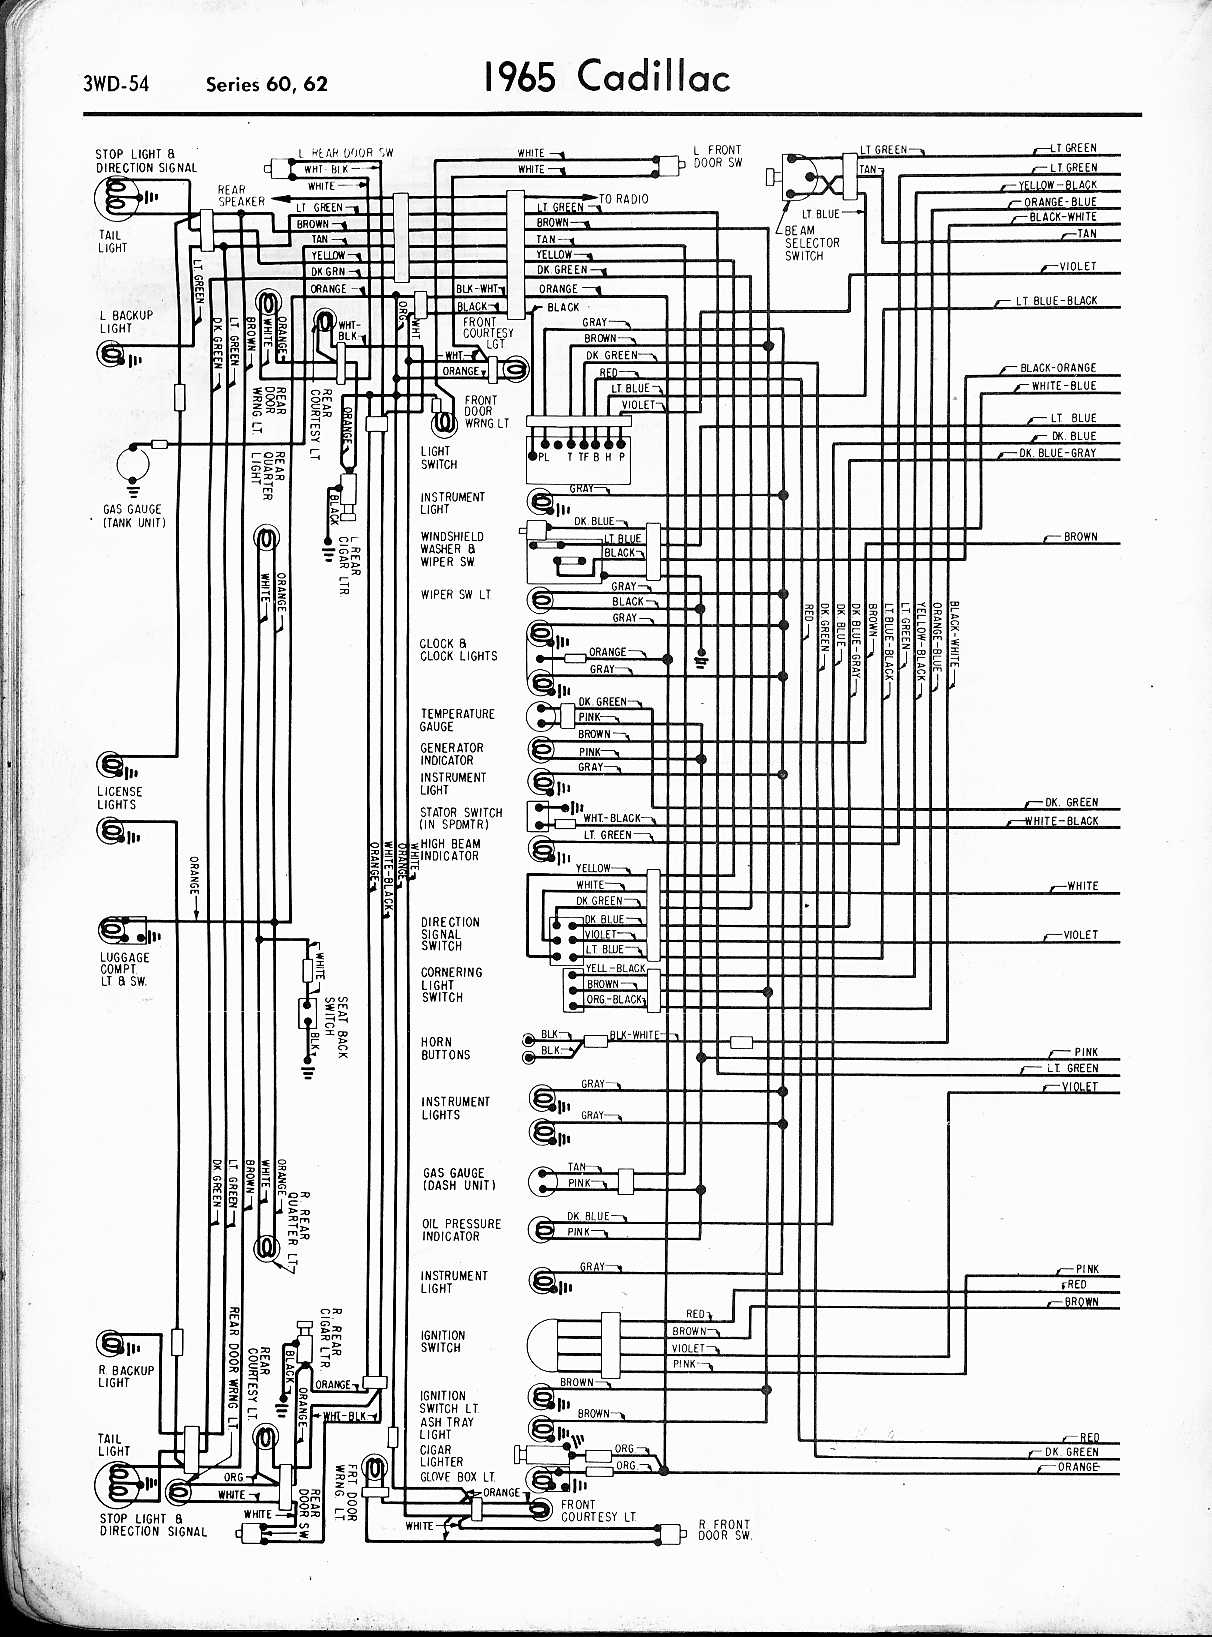 1966 Mustang Distributor Wiring Diagram Cadillac Wiring Diagrams 1957 1965